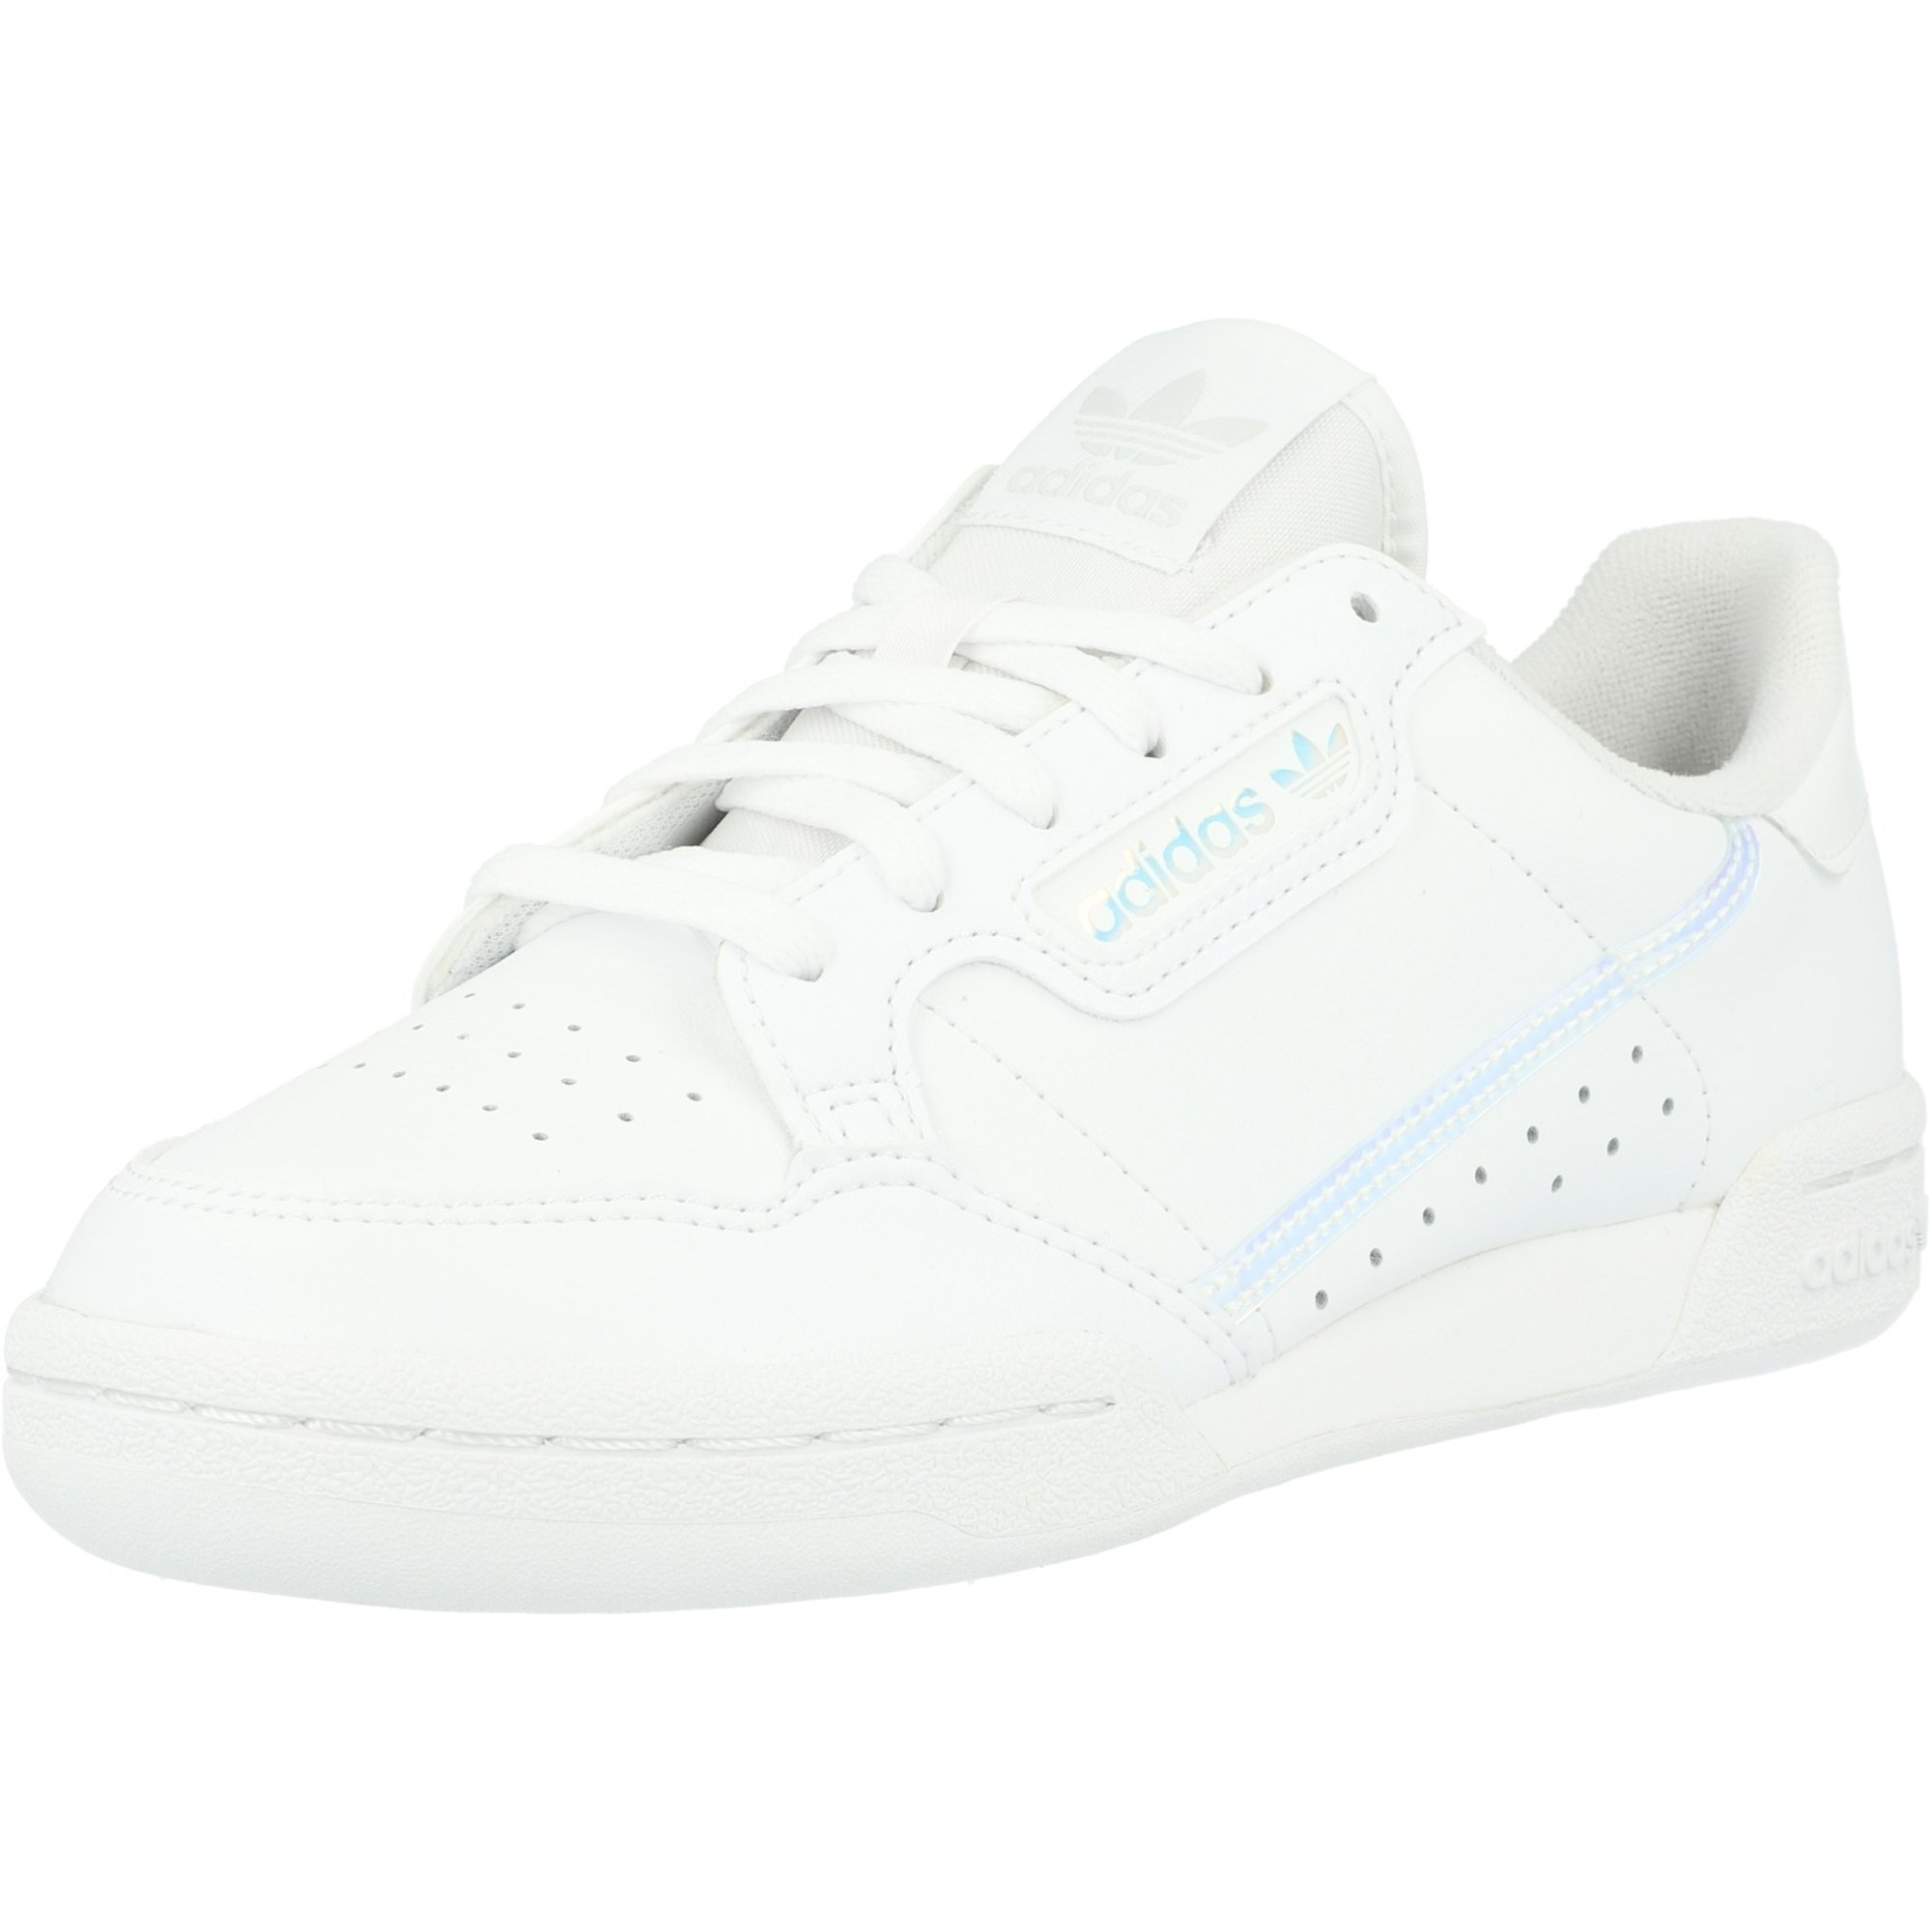 adidas Originals Continental 80 J White/Iridescent Leather Junior